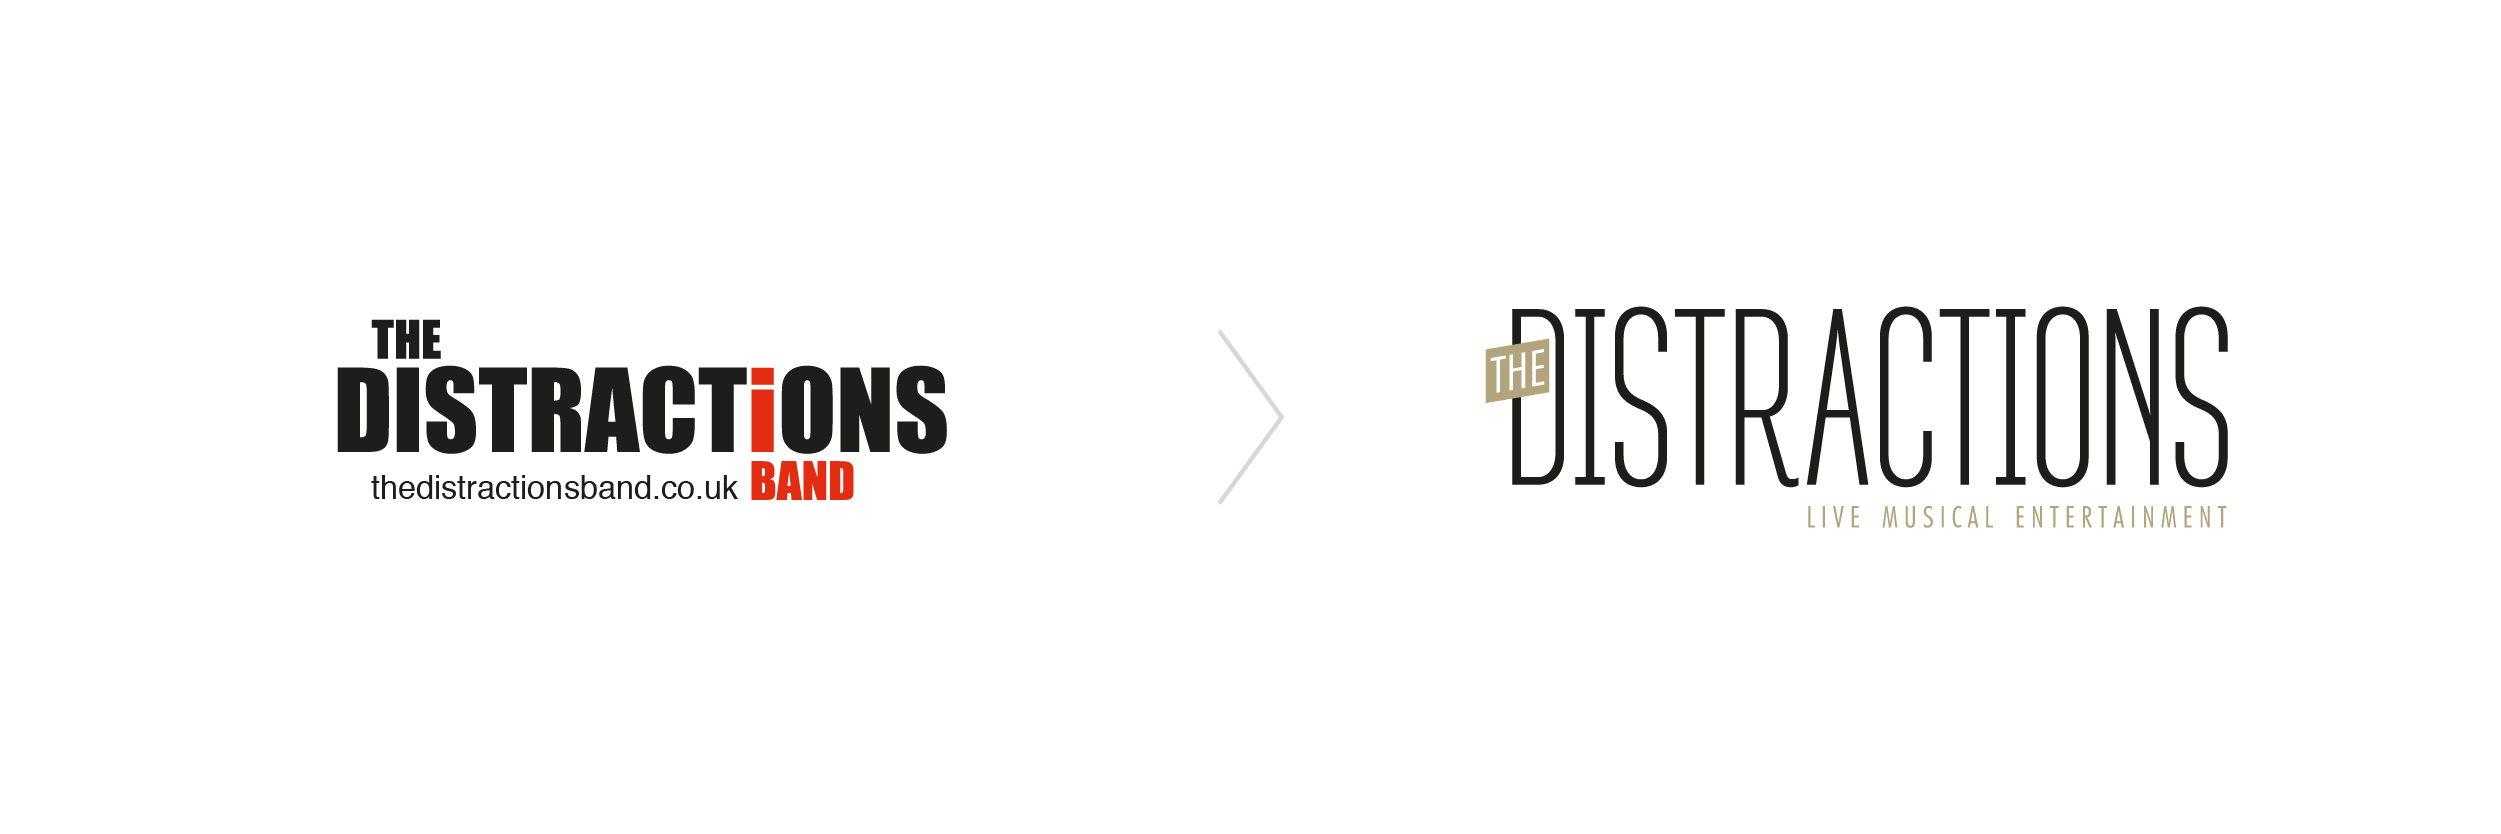 The Distractions Logo before and after